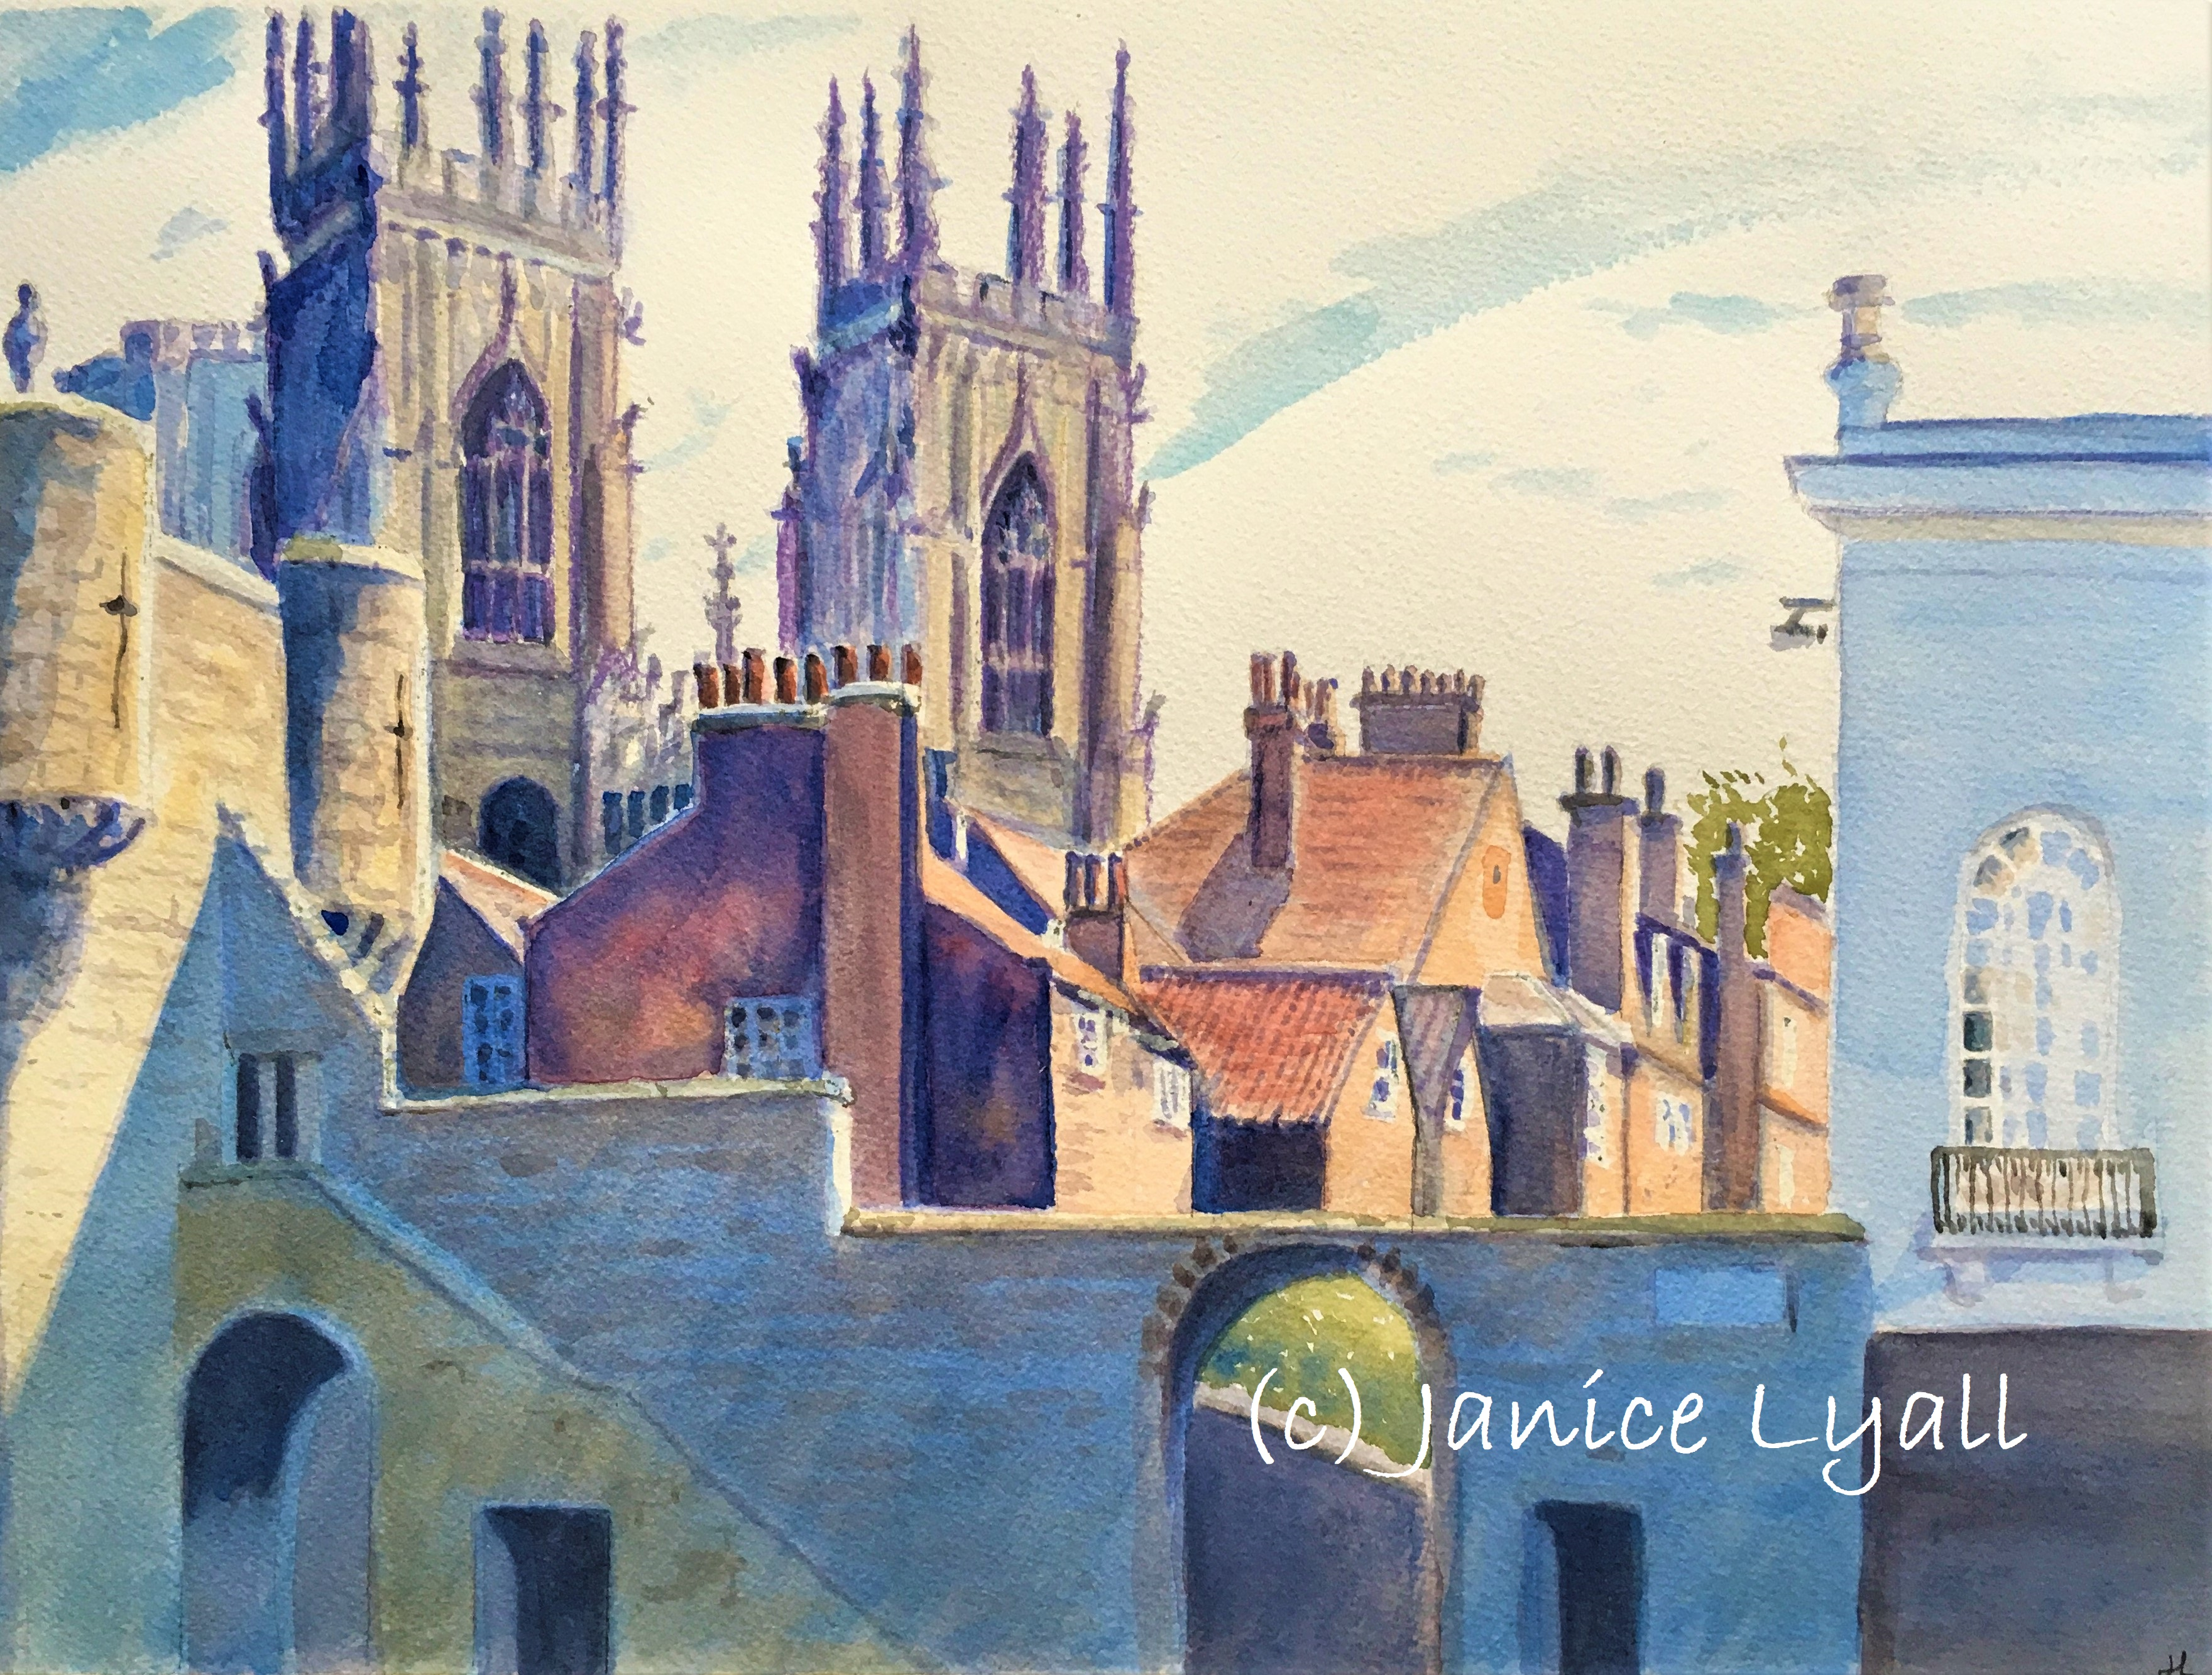 York Minster towering over the chimney pots